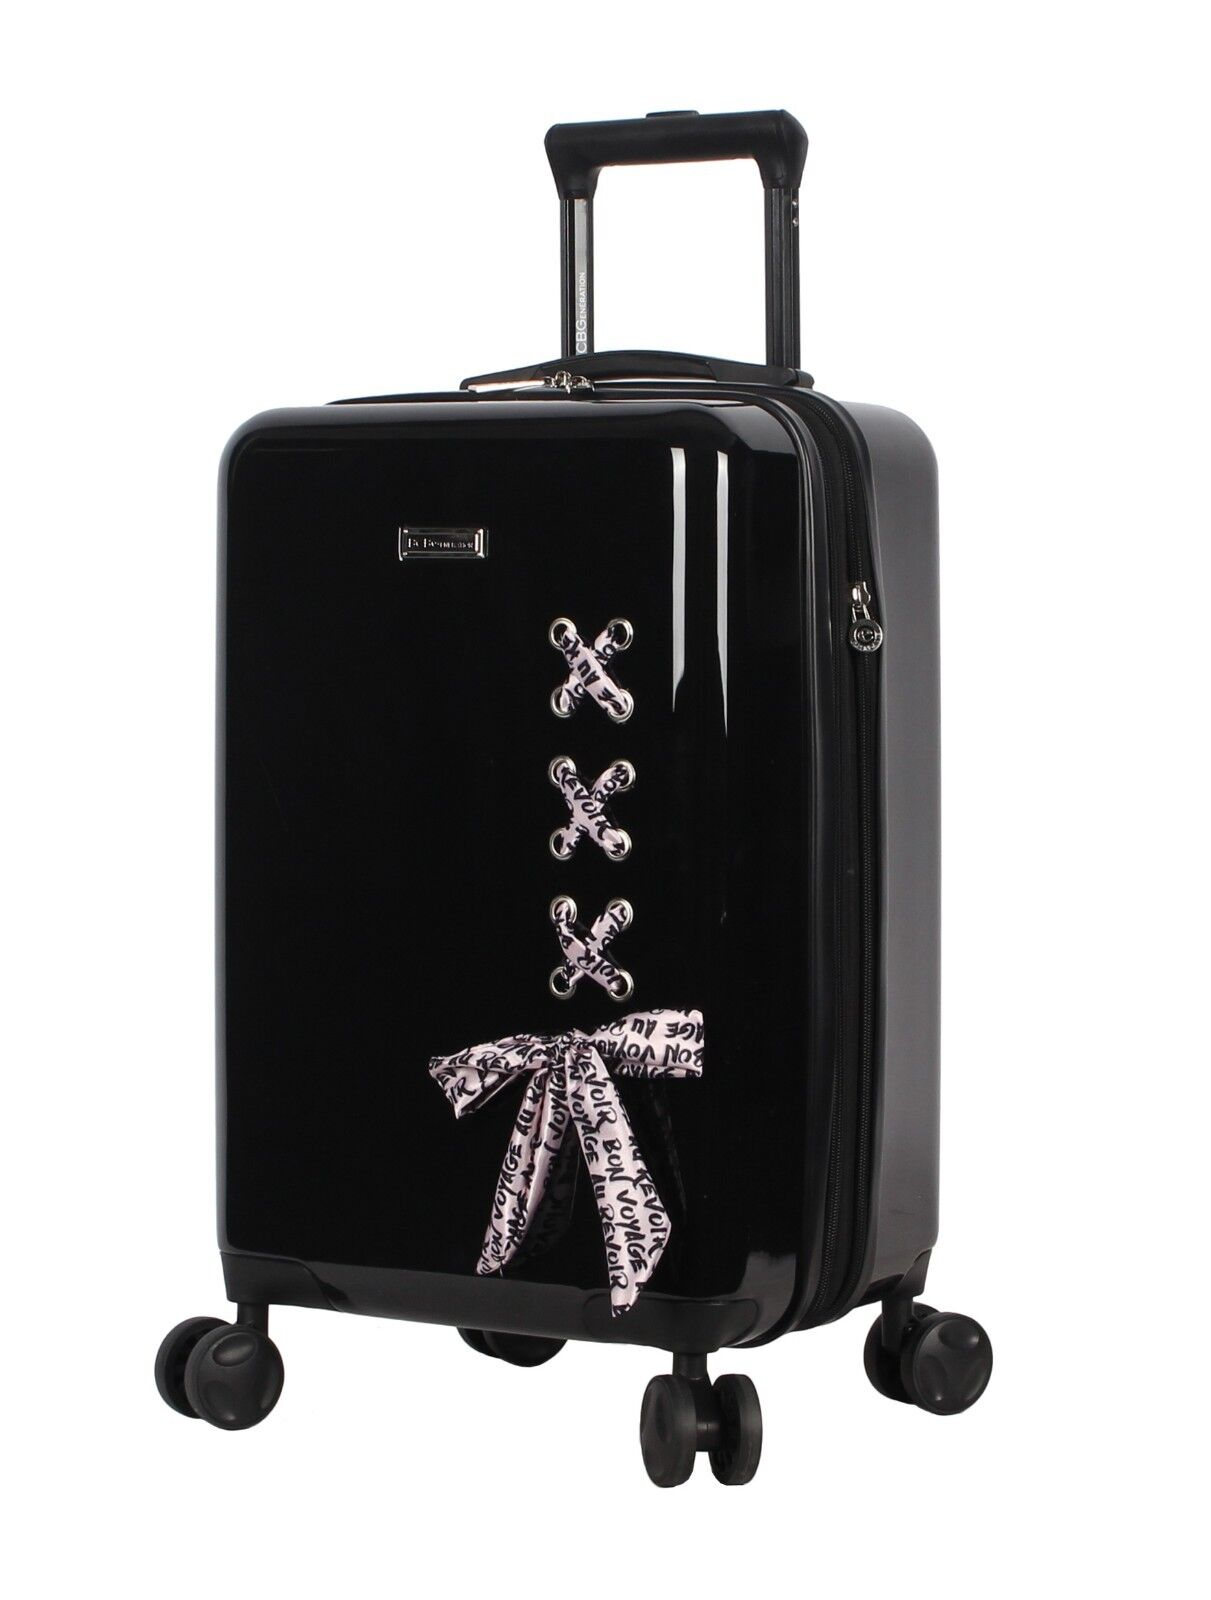 "BCBGeneration BCBG Luggage Hardside Carry On 20"" Suitcase wi"